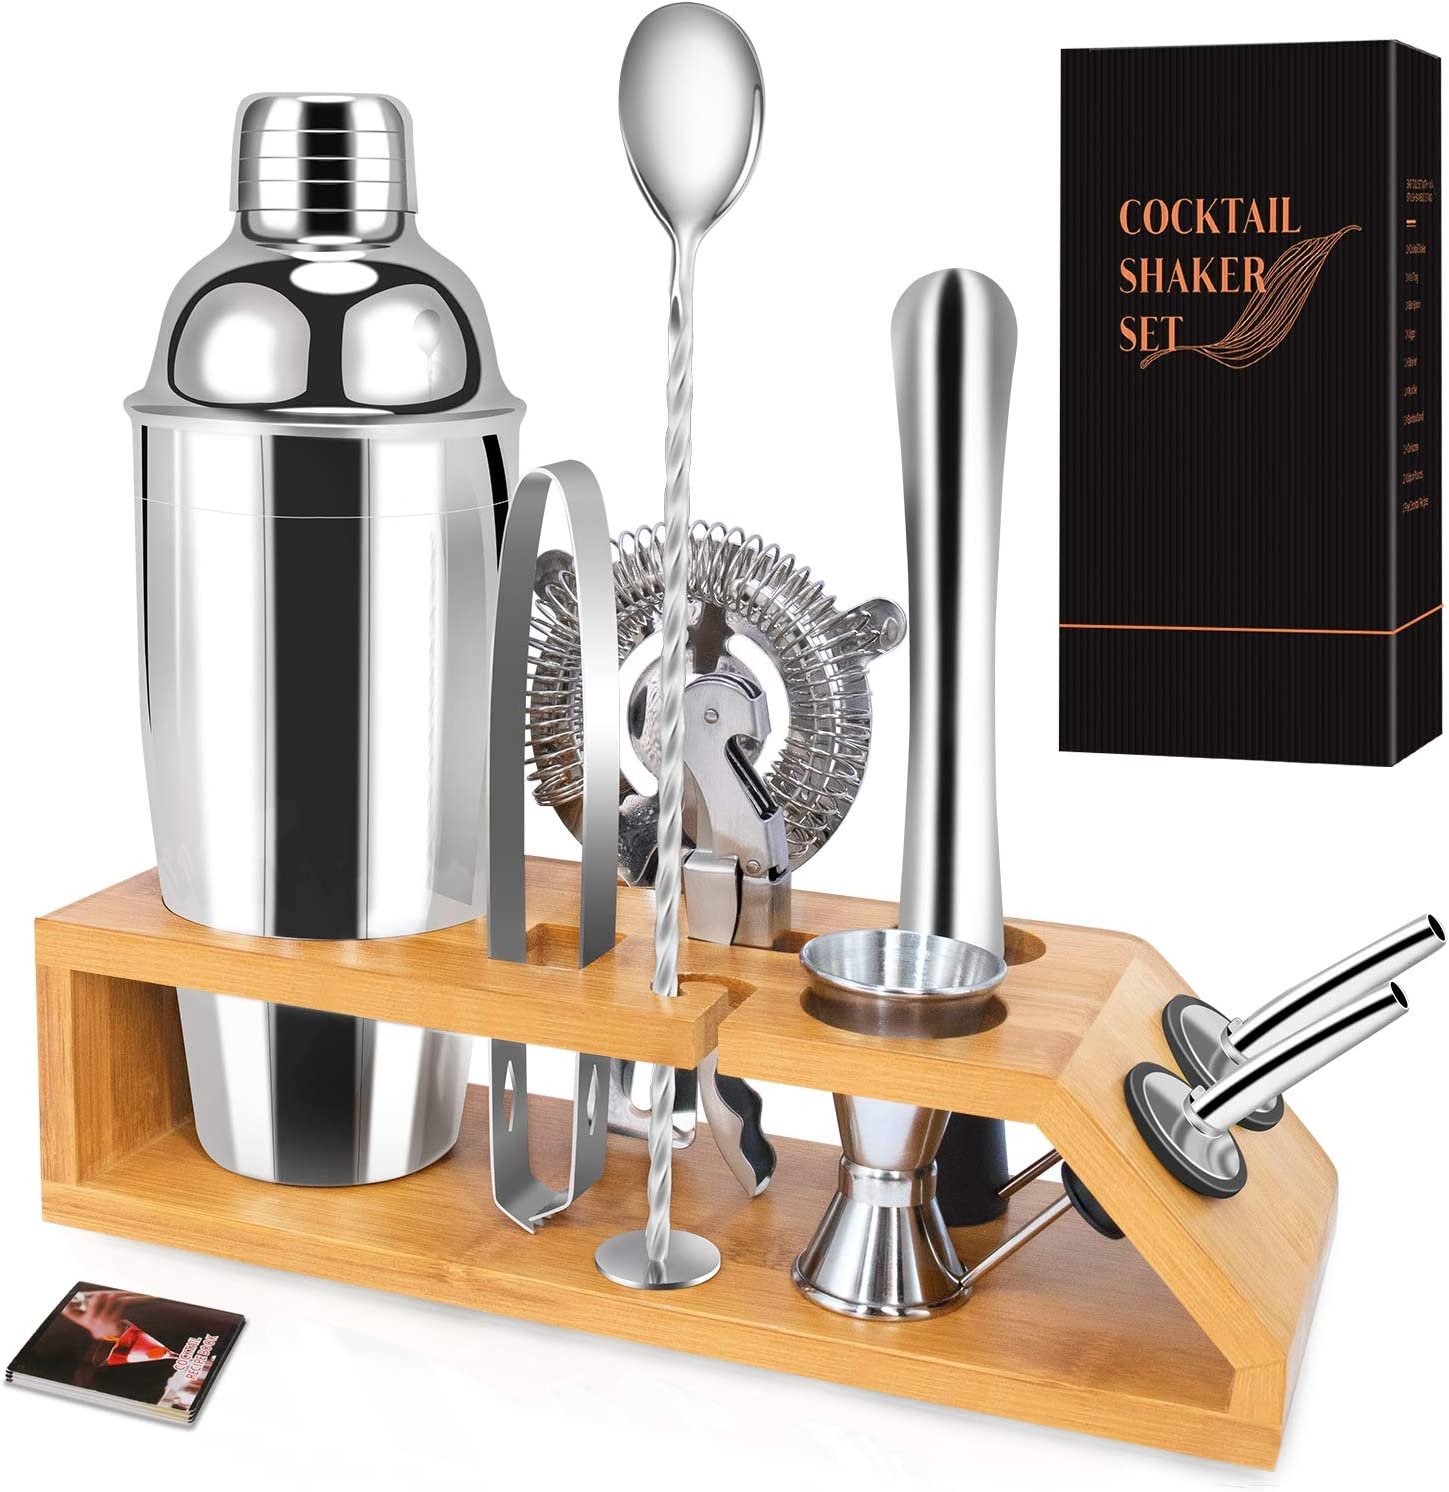 Cocktail Shaker Set with Stand-10 Pieces Stainless Steel Bartender Kit with Bamboo Base Includes Martini Shaker (25oz),Jigger,Strainer,Spoon and More for Wonderful and Colorful Experience